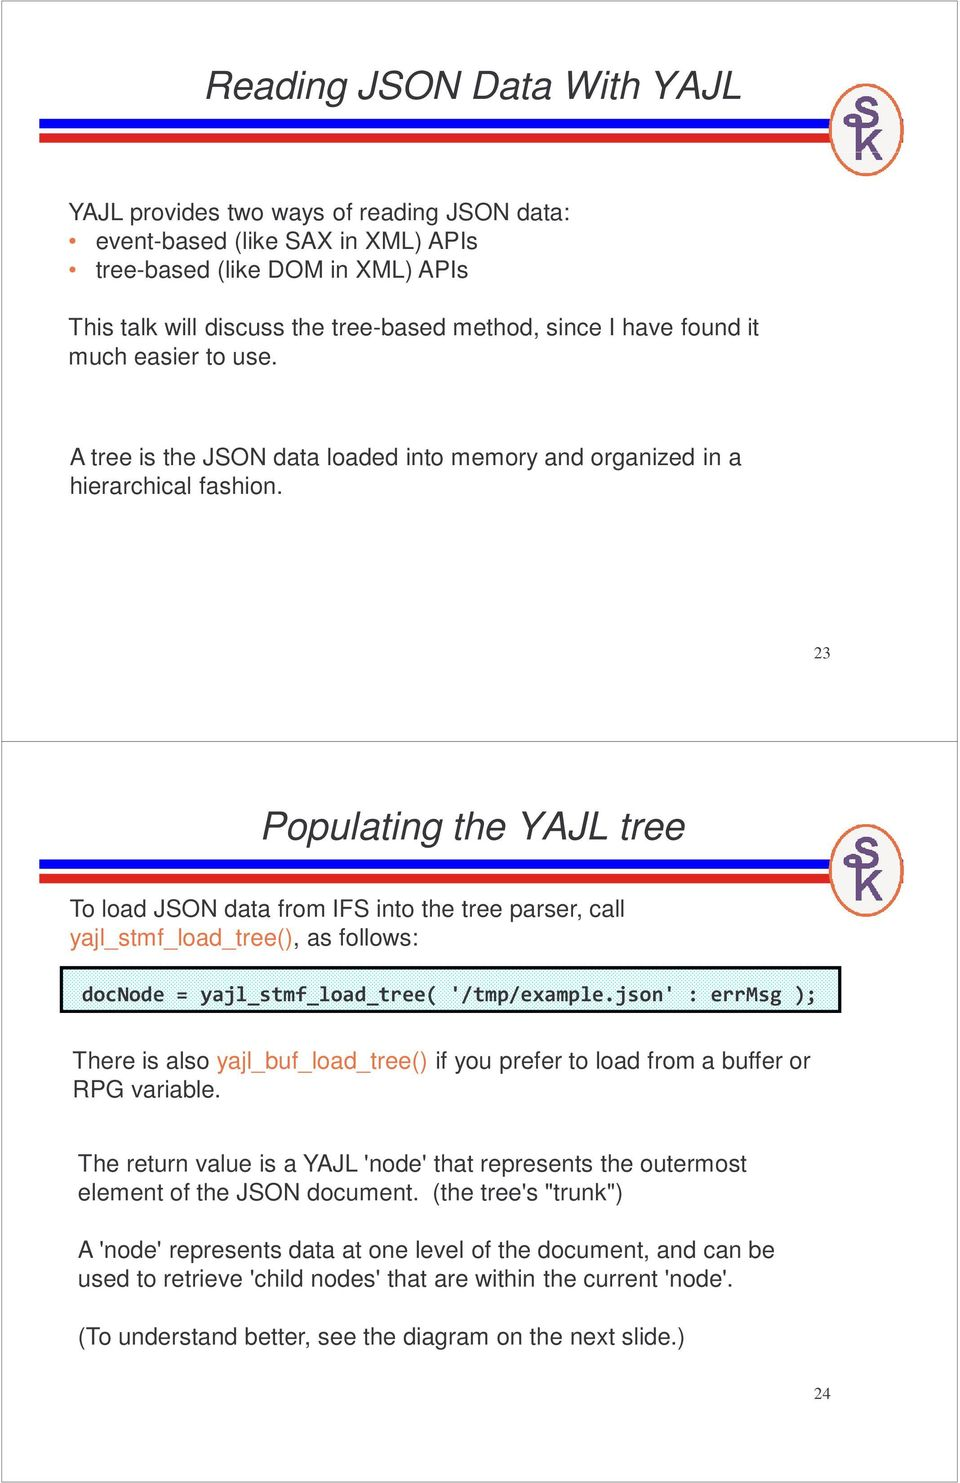 Working with JSON in RPG  (YAJL Open Source JSON Tool) - PDF